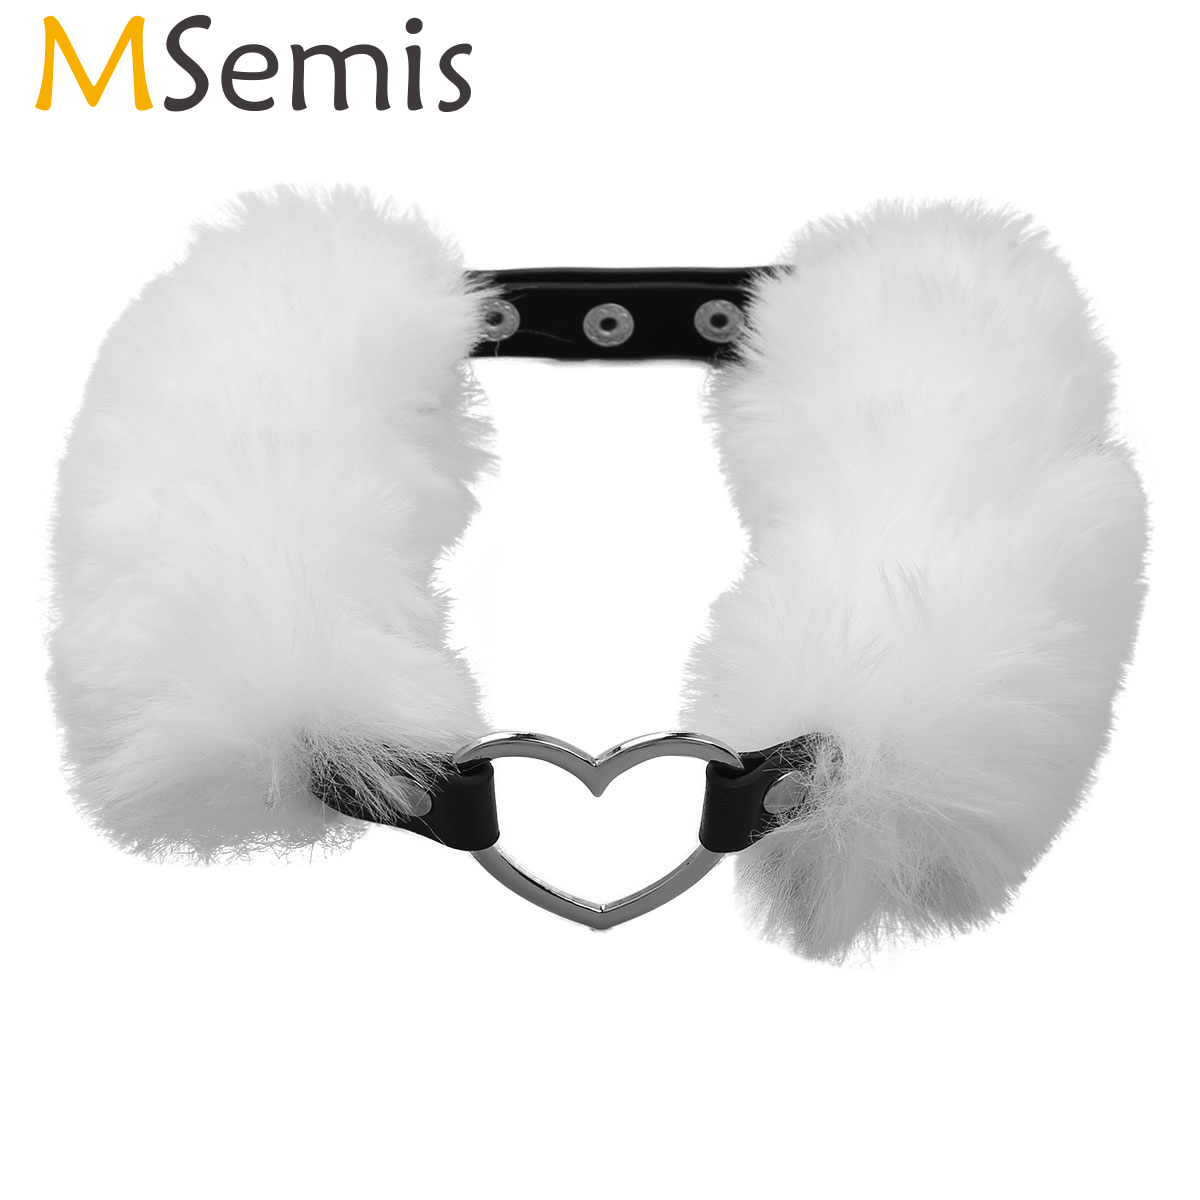 MSemis Sexy Toys For Men Women Erotic Game Gothic PU Leather Faux Fur Collar Choker Necklace Neck Harness With Metal Heart Ring